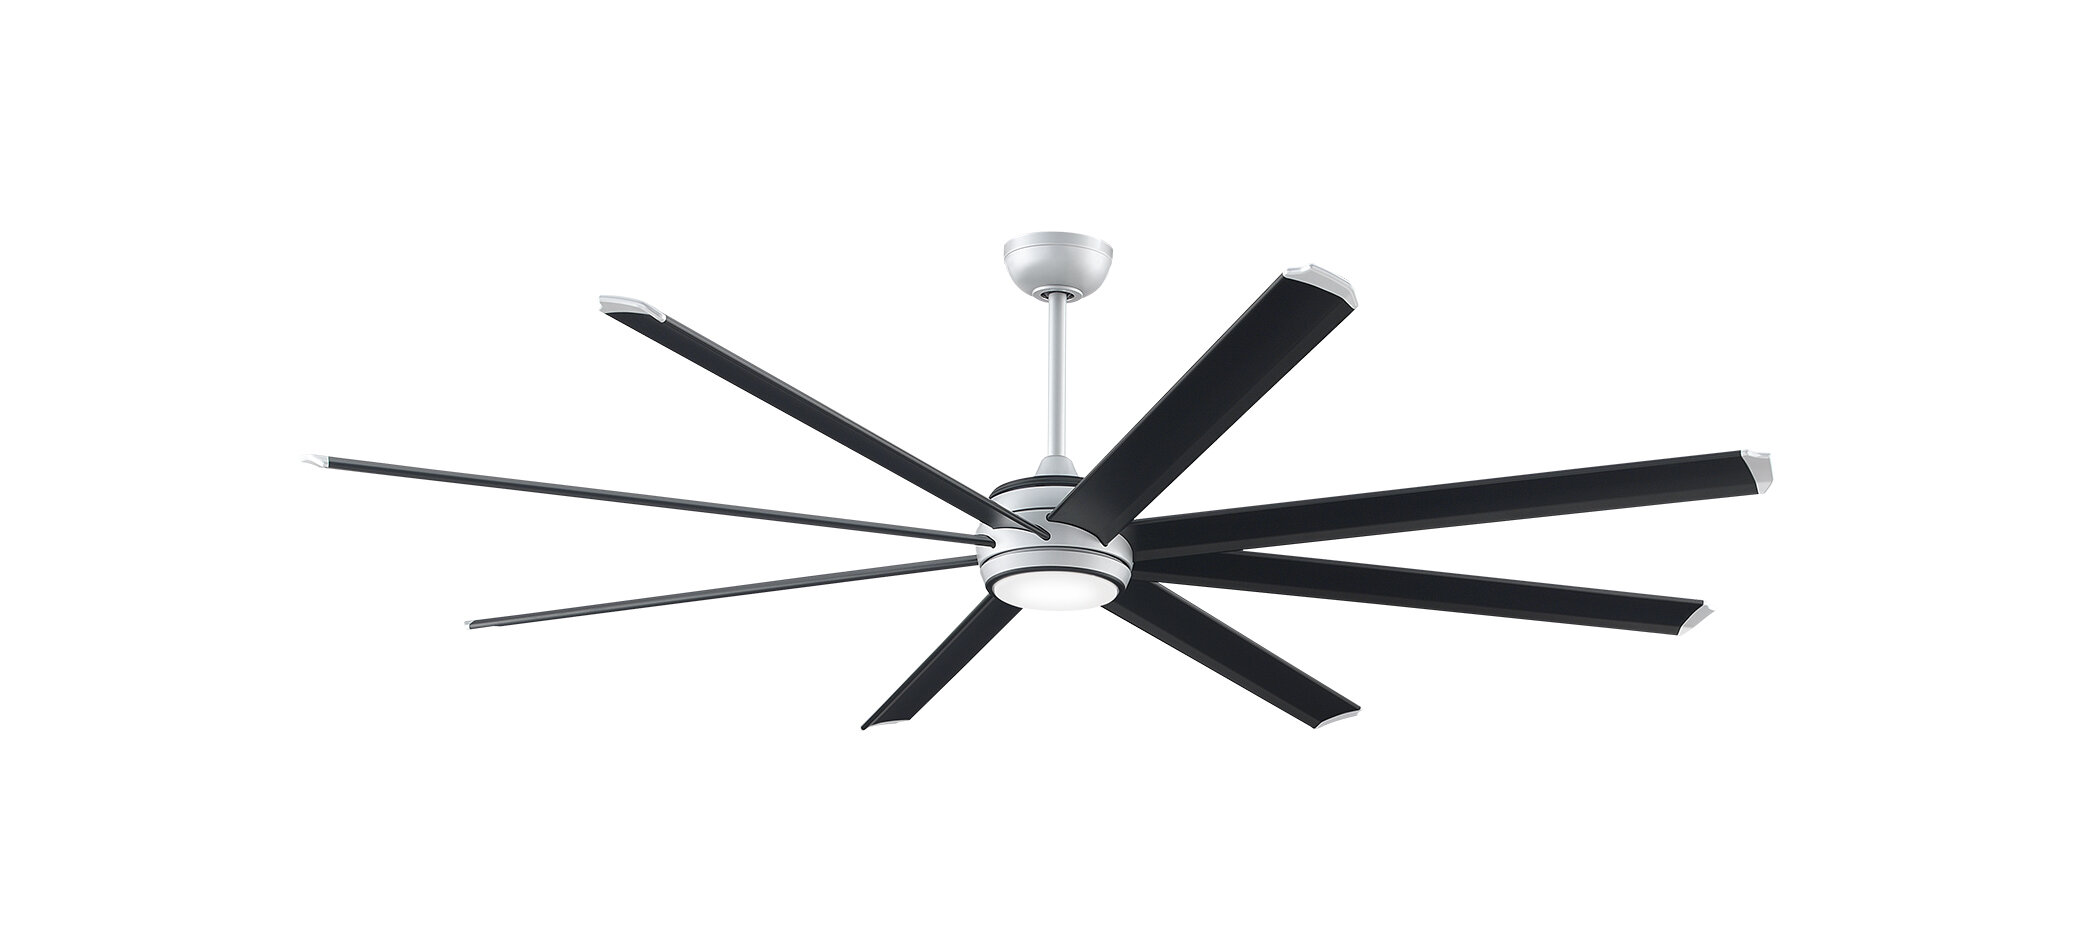 ash outdoor fan ceiling products fans index black